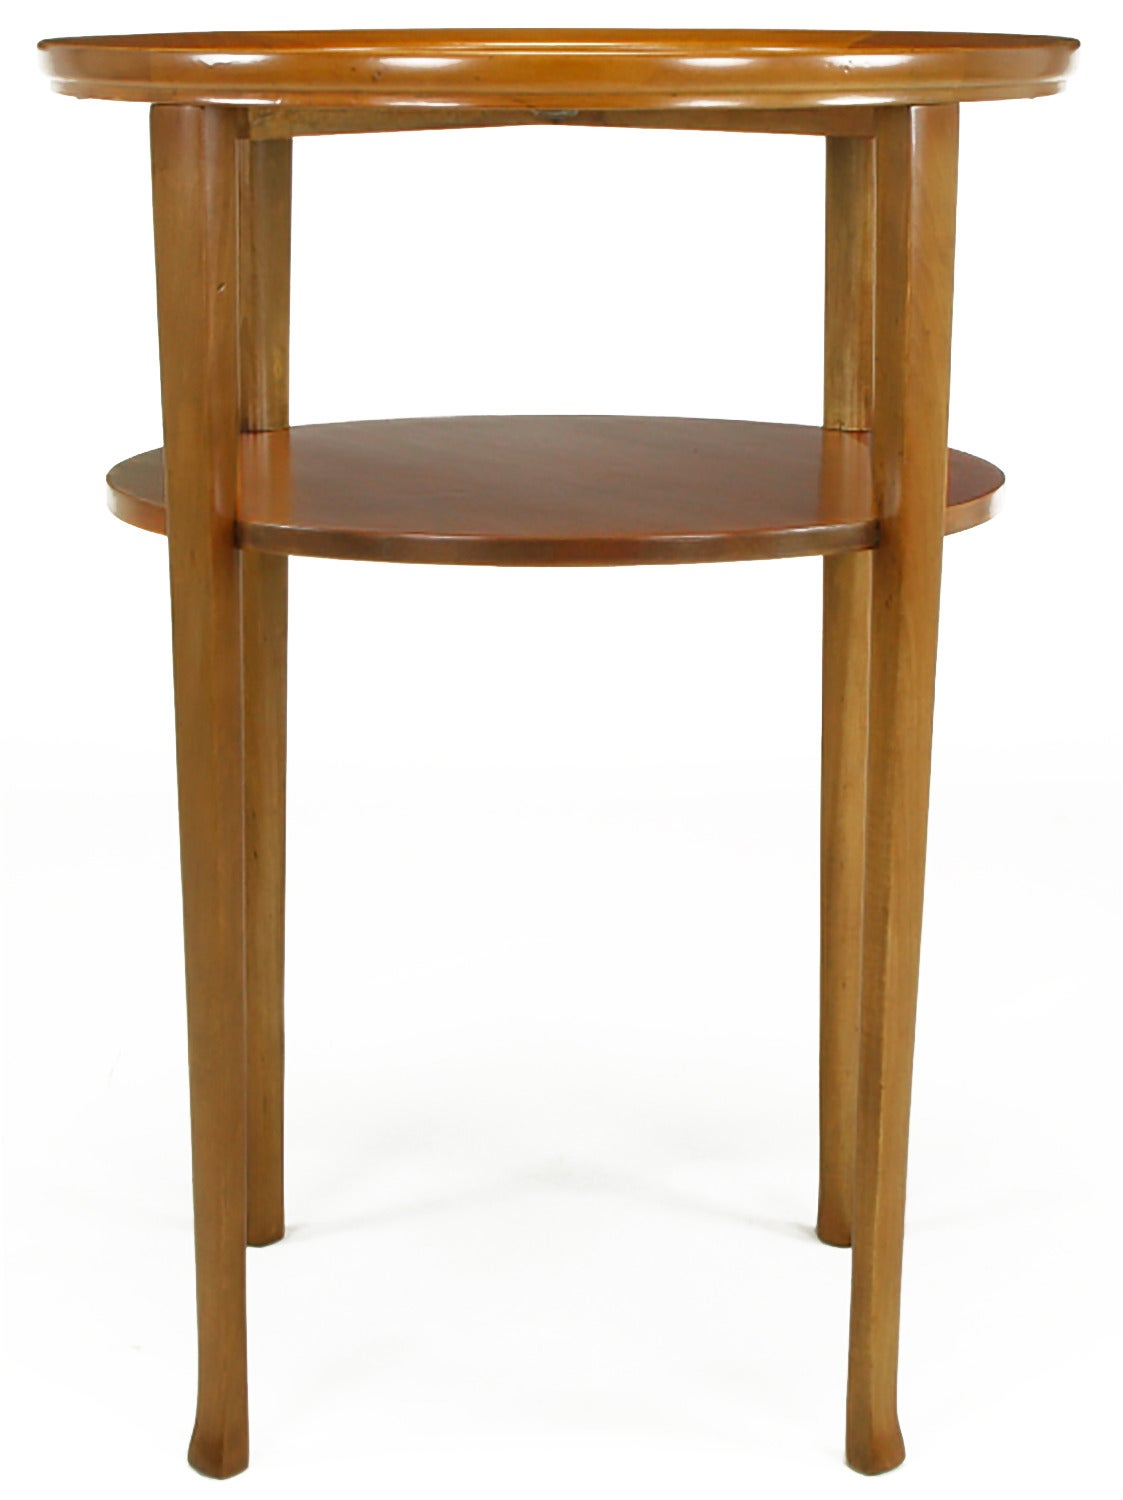 Mid-20th Century 1940s Round Two-Tier Maple Side Table with Buffalo Leather Inlay For Sale